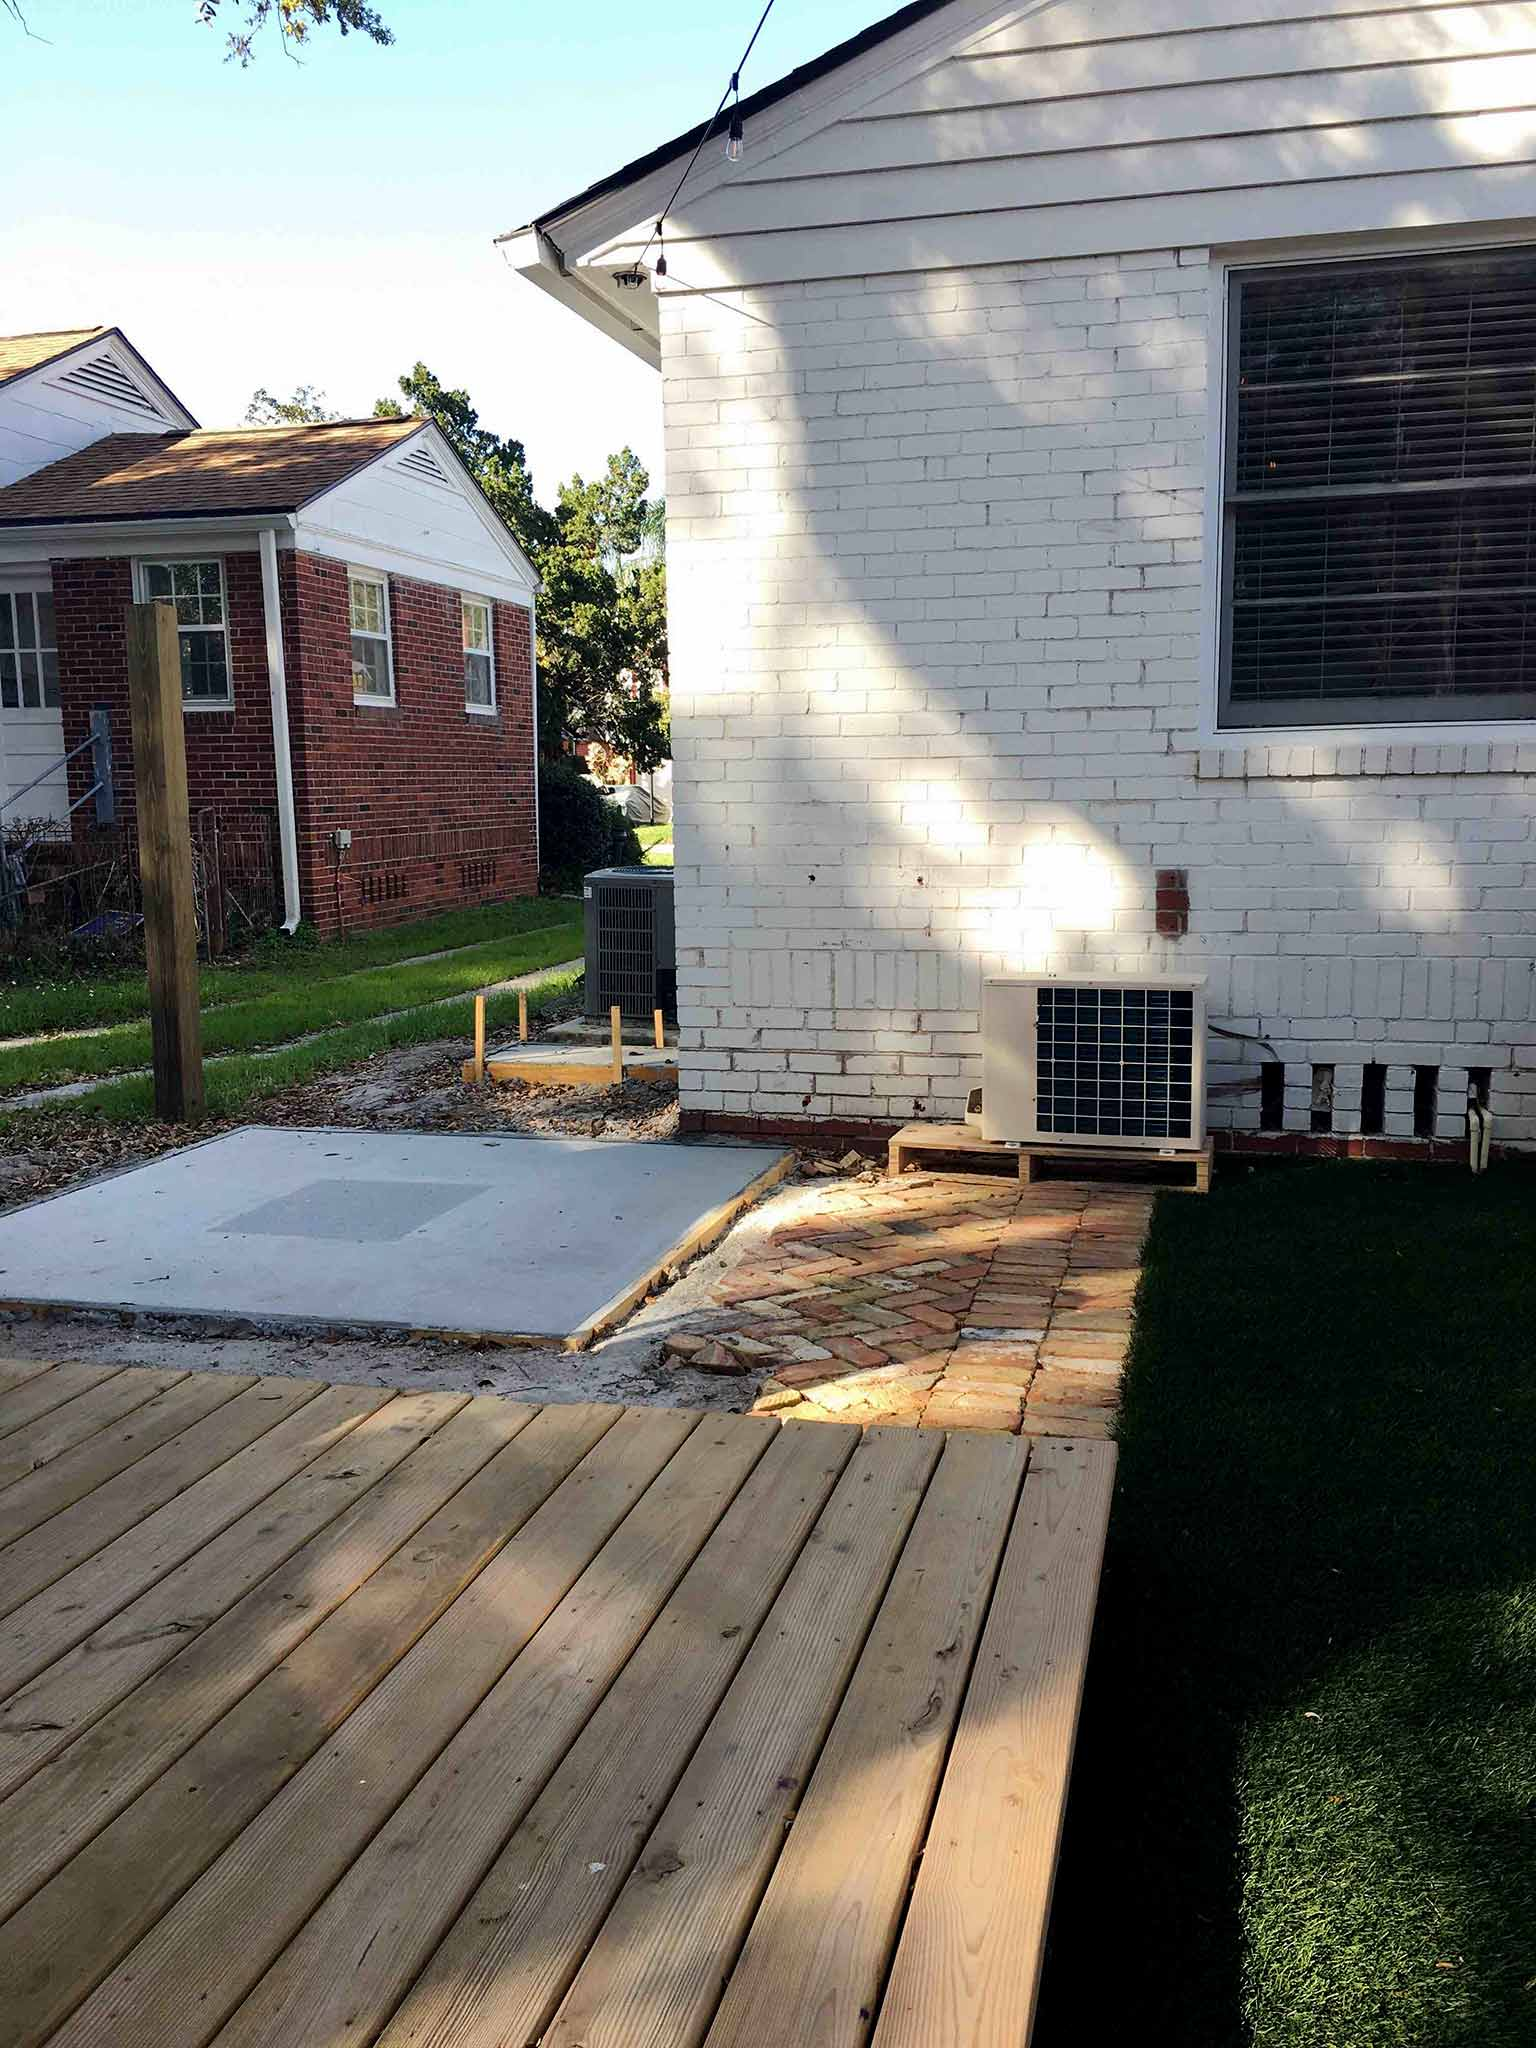 Space for the hot tub - How we planned our backyard space - That Homebird Life Blog